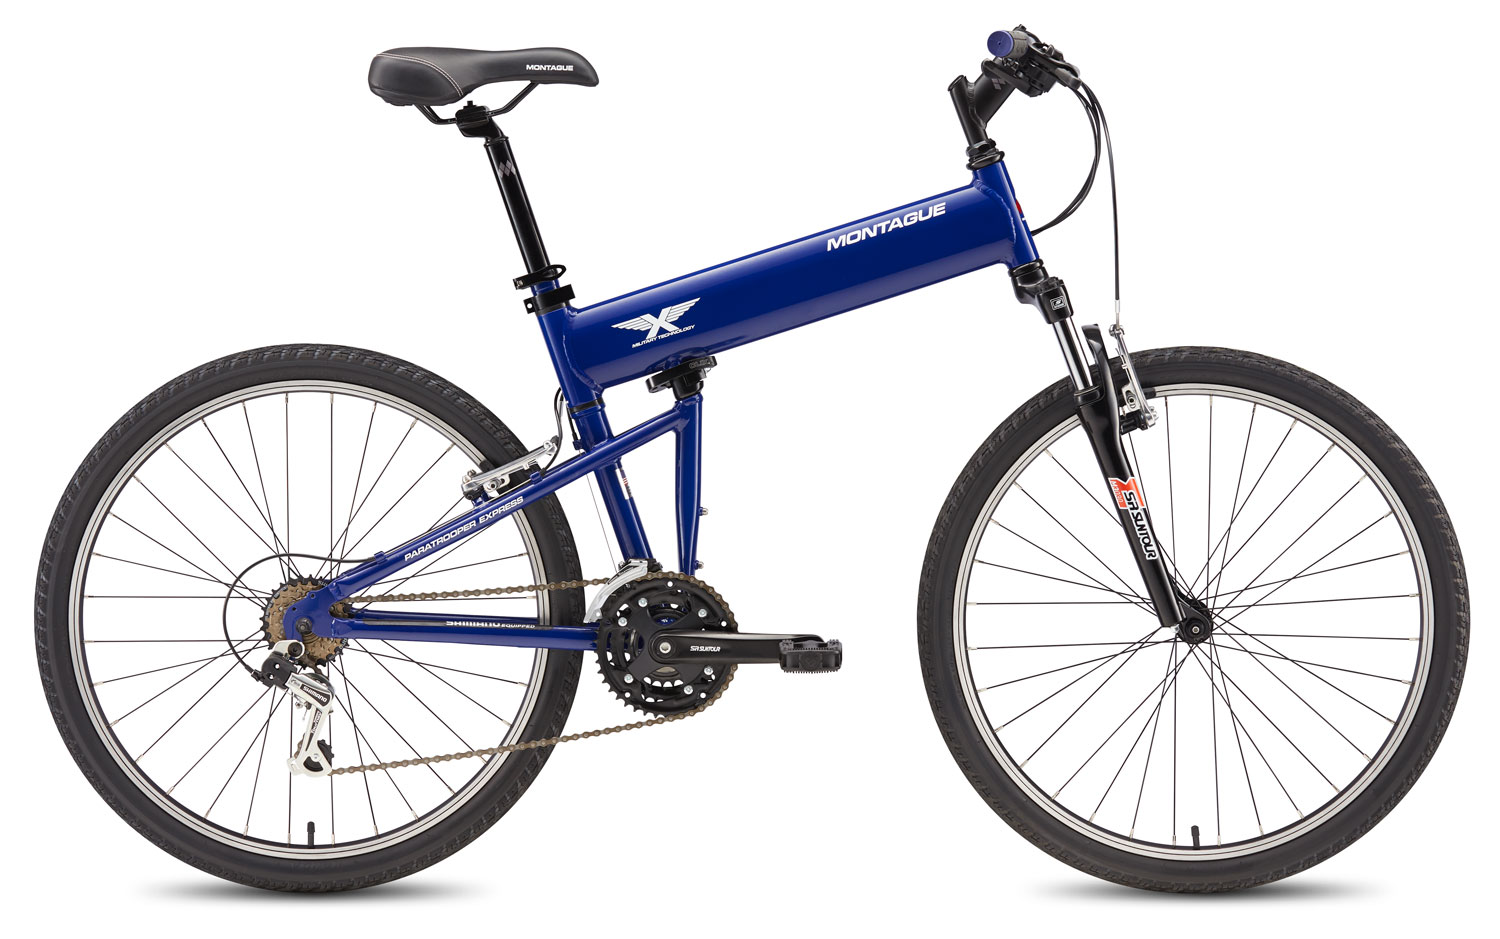 Montague paratrooper express 18 speed folding mountain bike for The montague